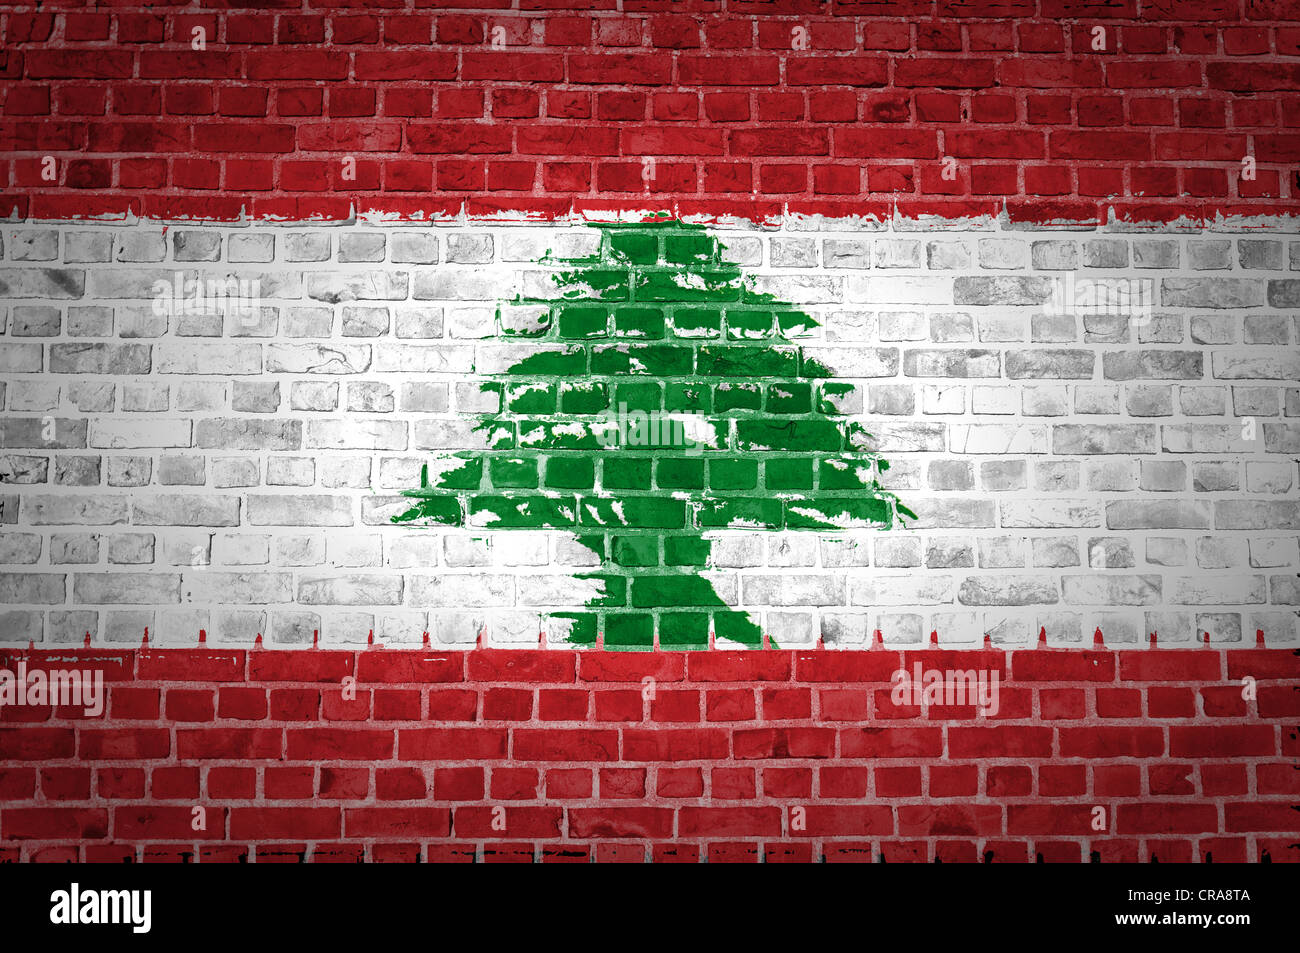 An image of the Lebanon flag painted on a brick wall in an urban location - Stock Image